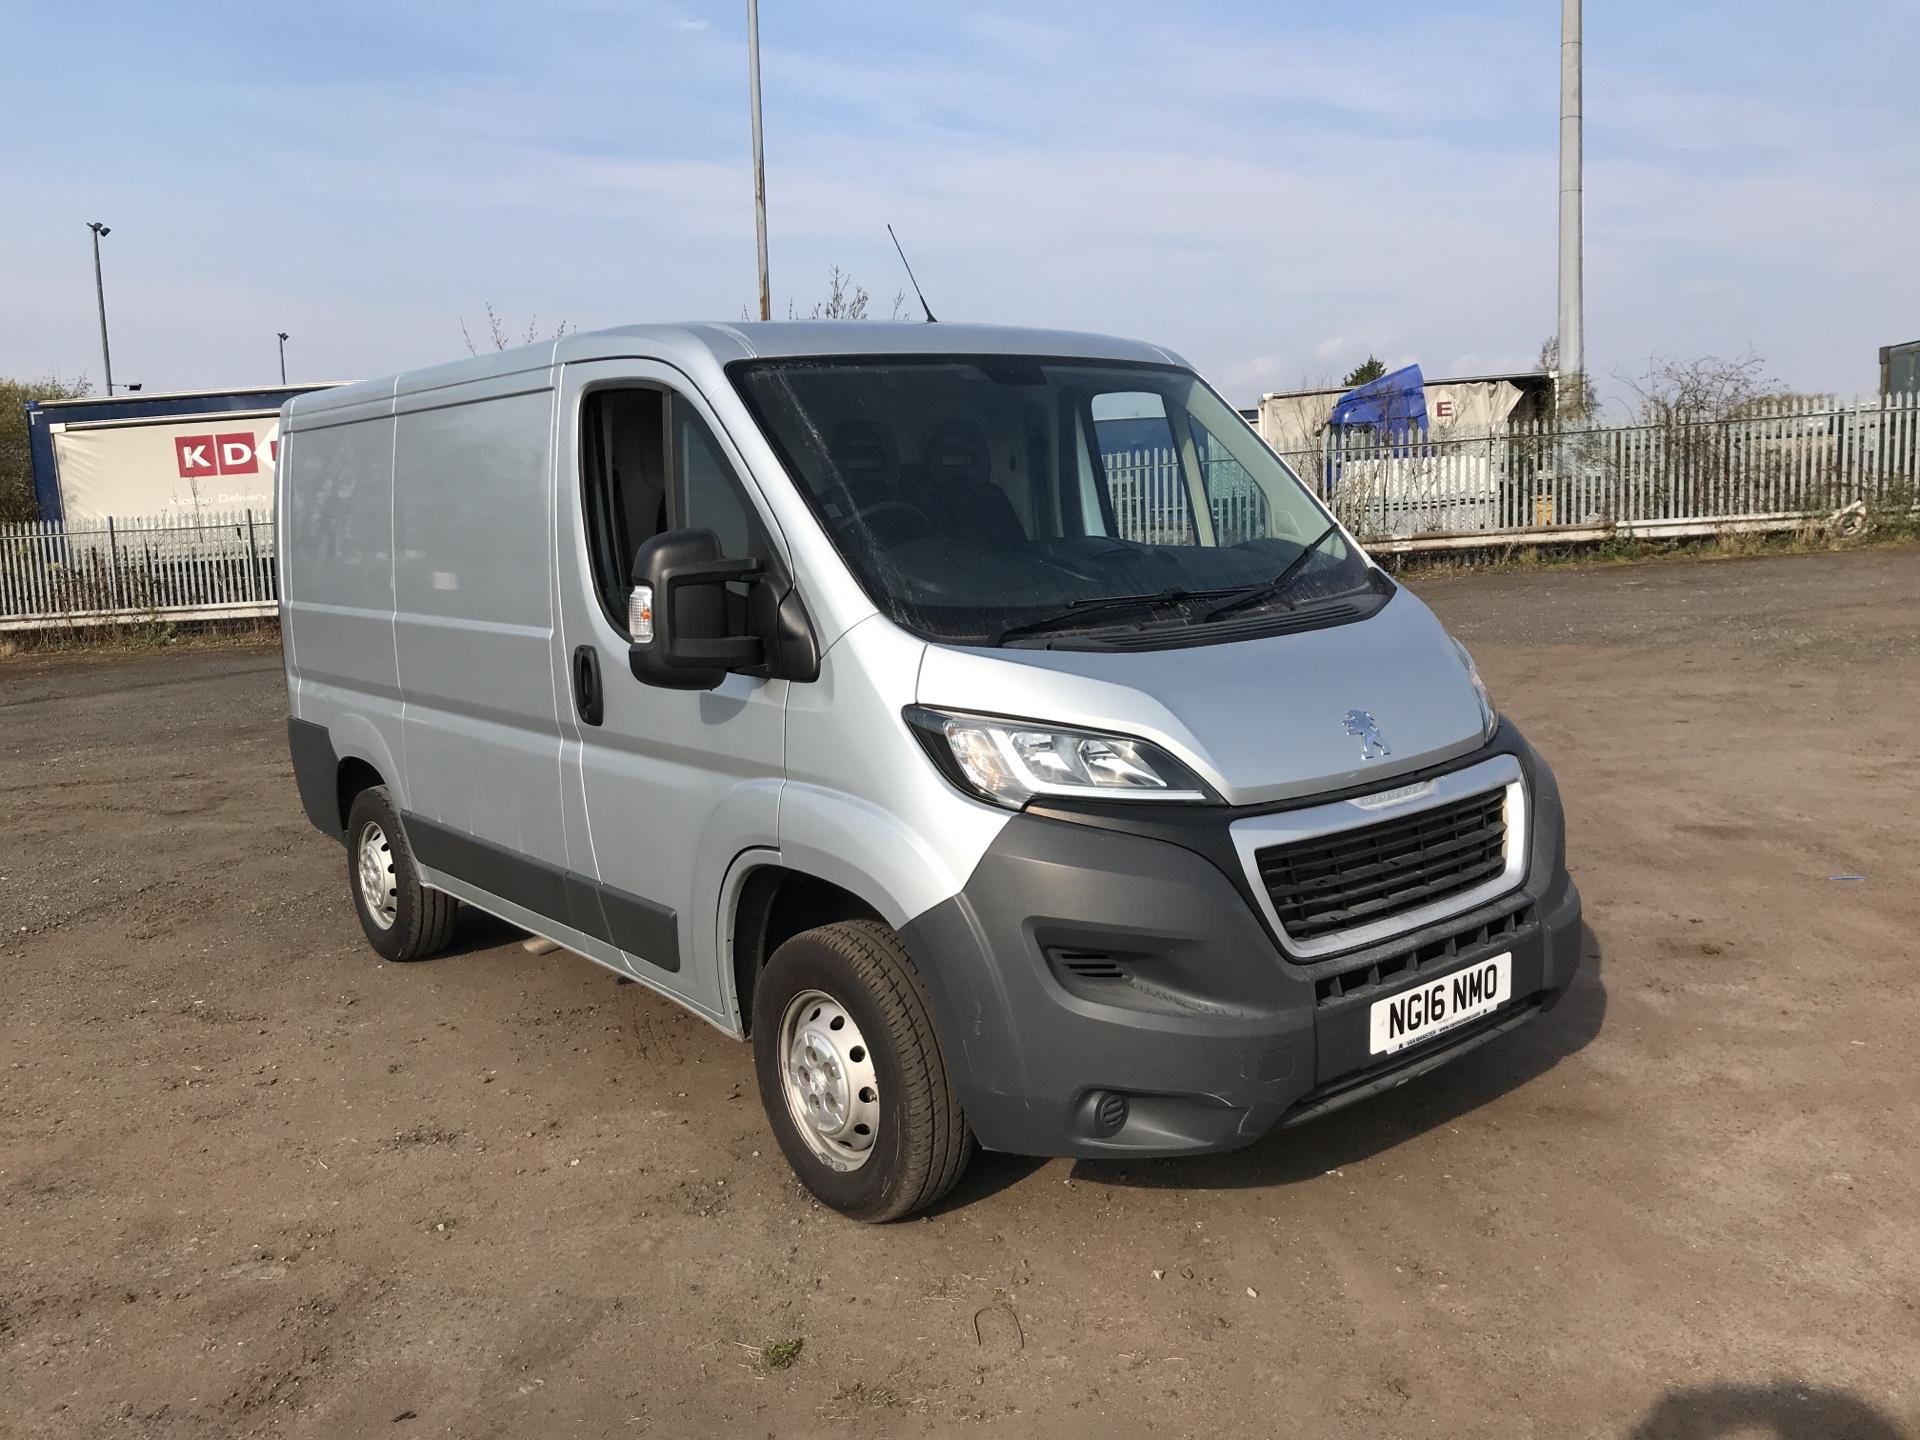 2016 Peugeot Boxer 2.0 Bluehdi H1  Professional Van 110Ps *VALUE RANGE VEHICLE CONDITION REFLECTED IN PRICE* (NG16NMO)